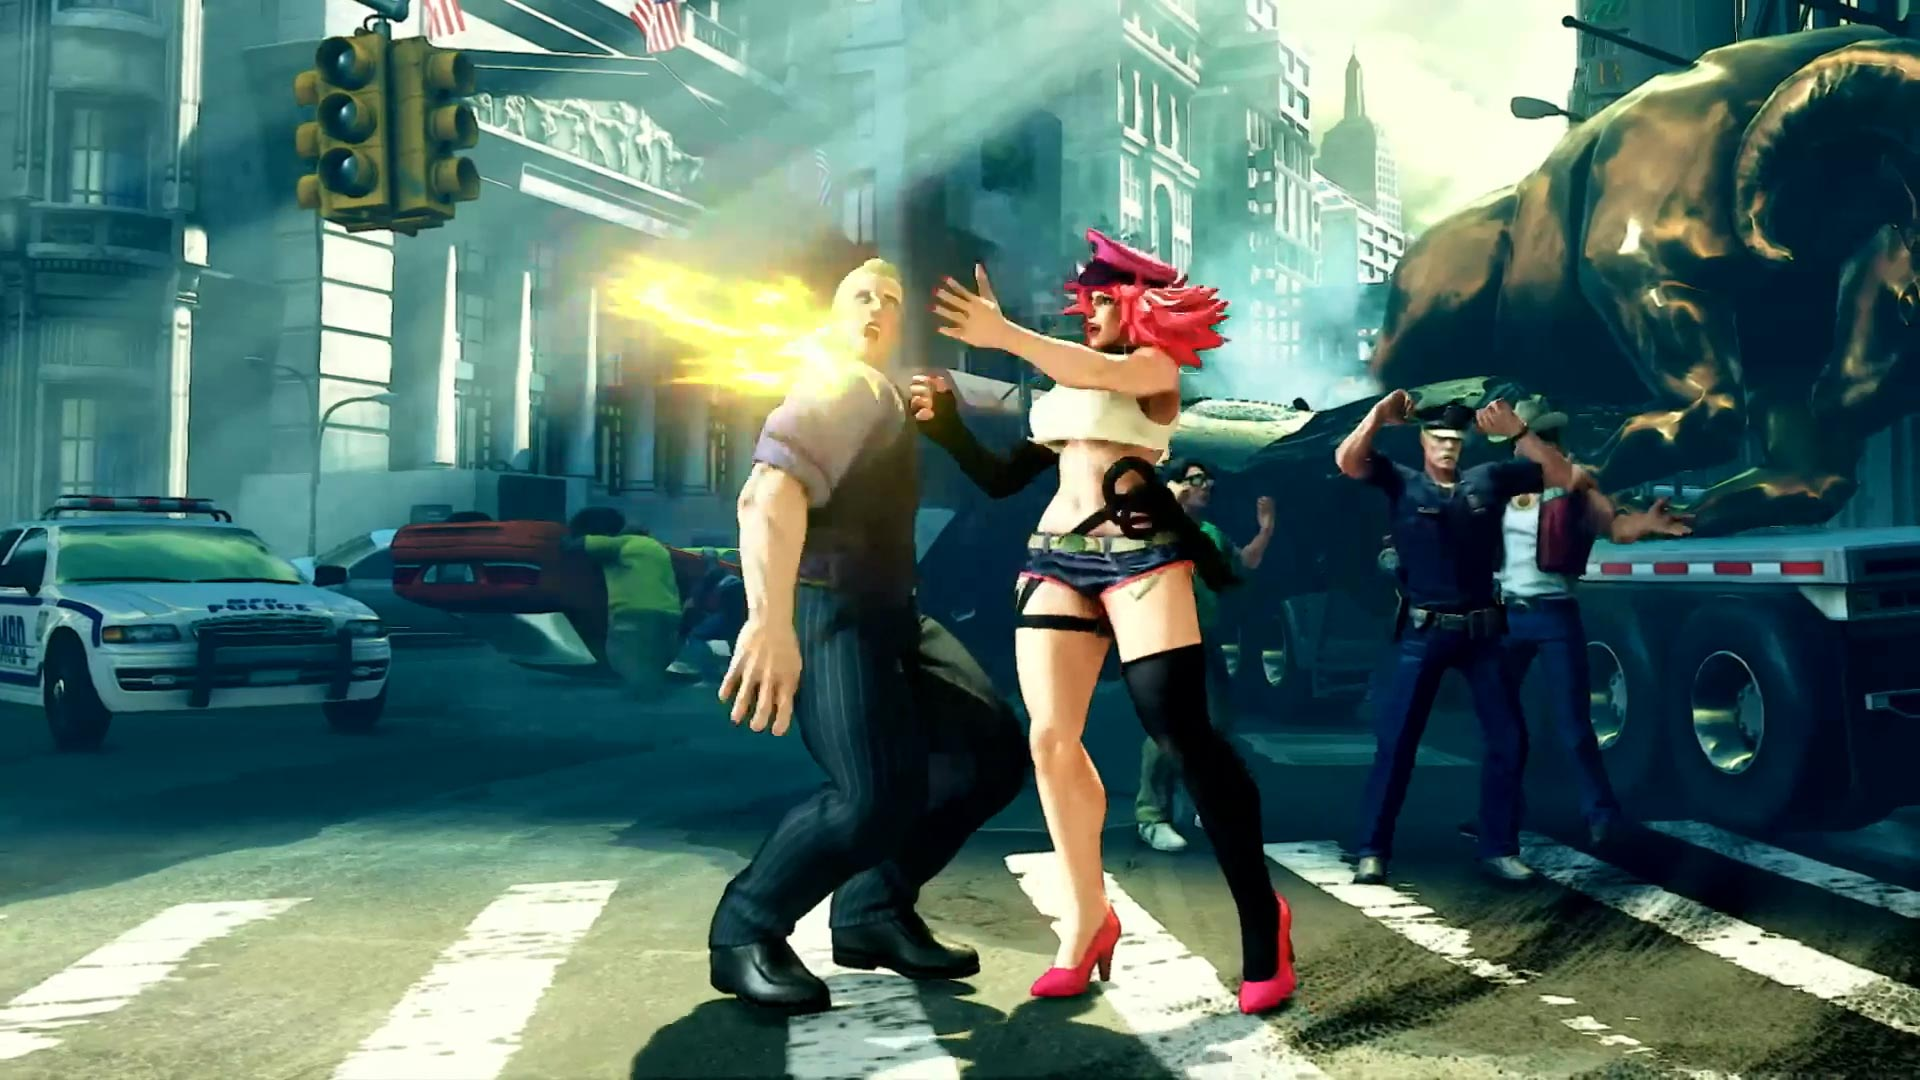 Street Fighter 5 leaked gallery of E. Honda, Lucia and Poison 33 out of 35 image gallery